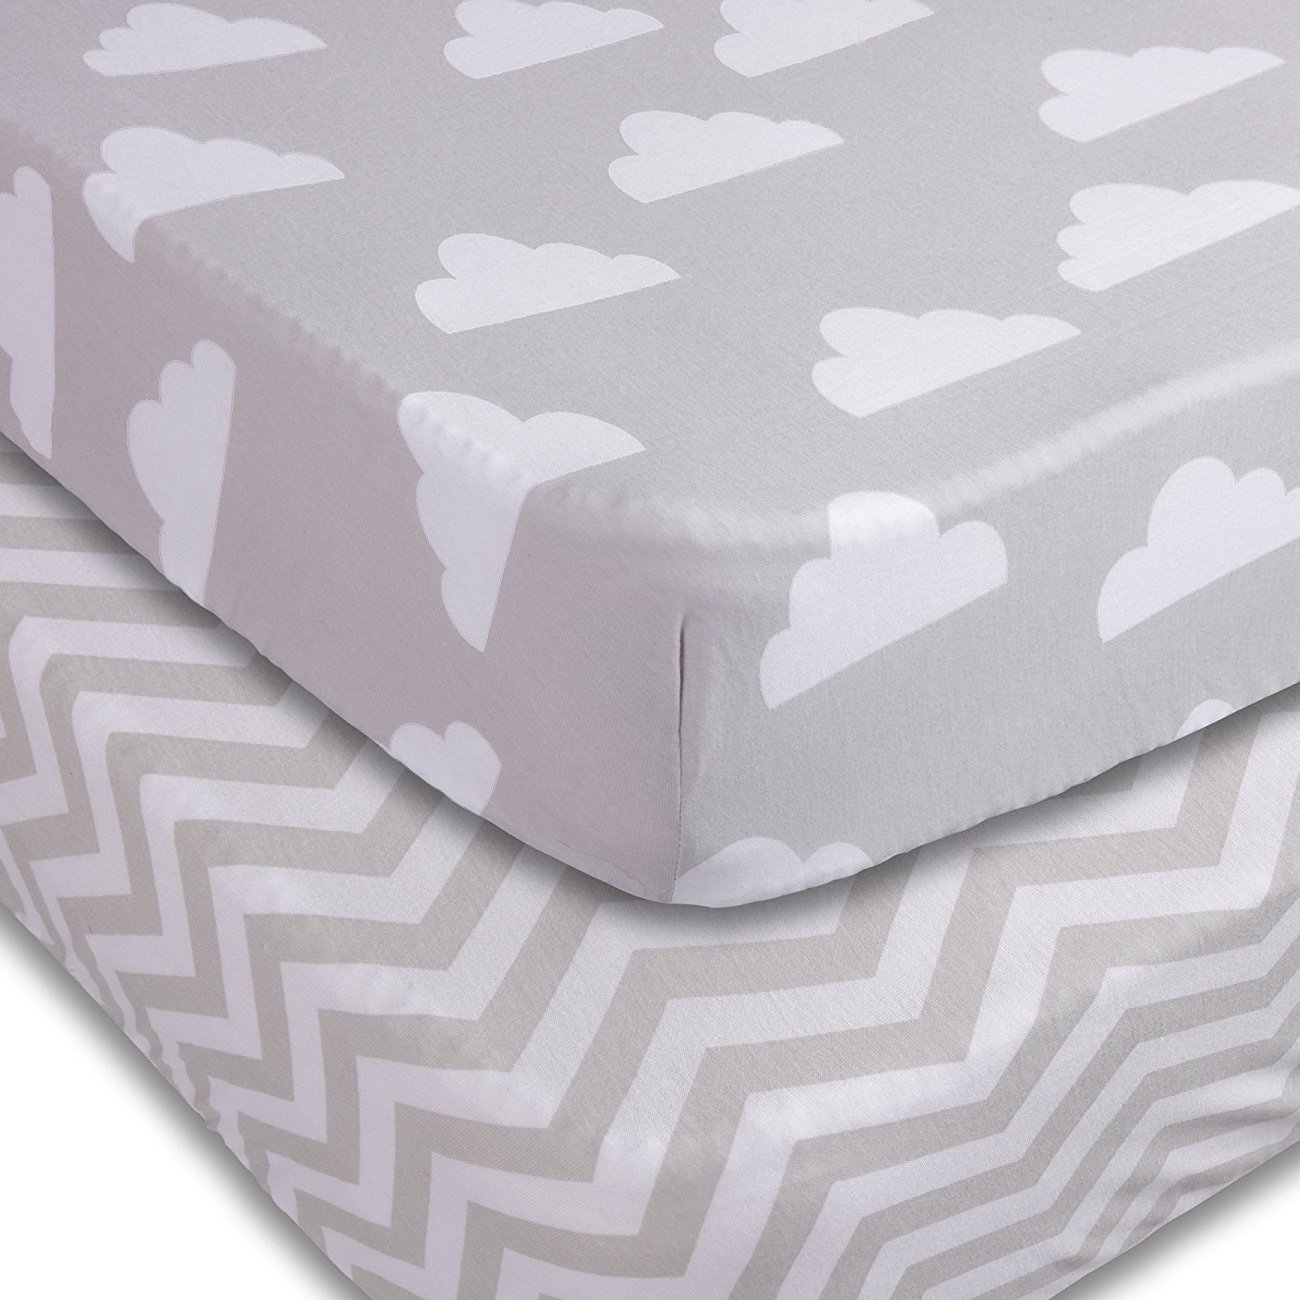 Playard Sheets, 2 Pack Clouds/Chevron Fitted Soft Jersey Cotton Playpen Bedding